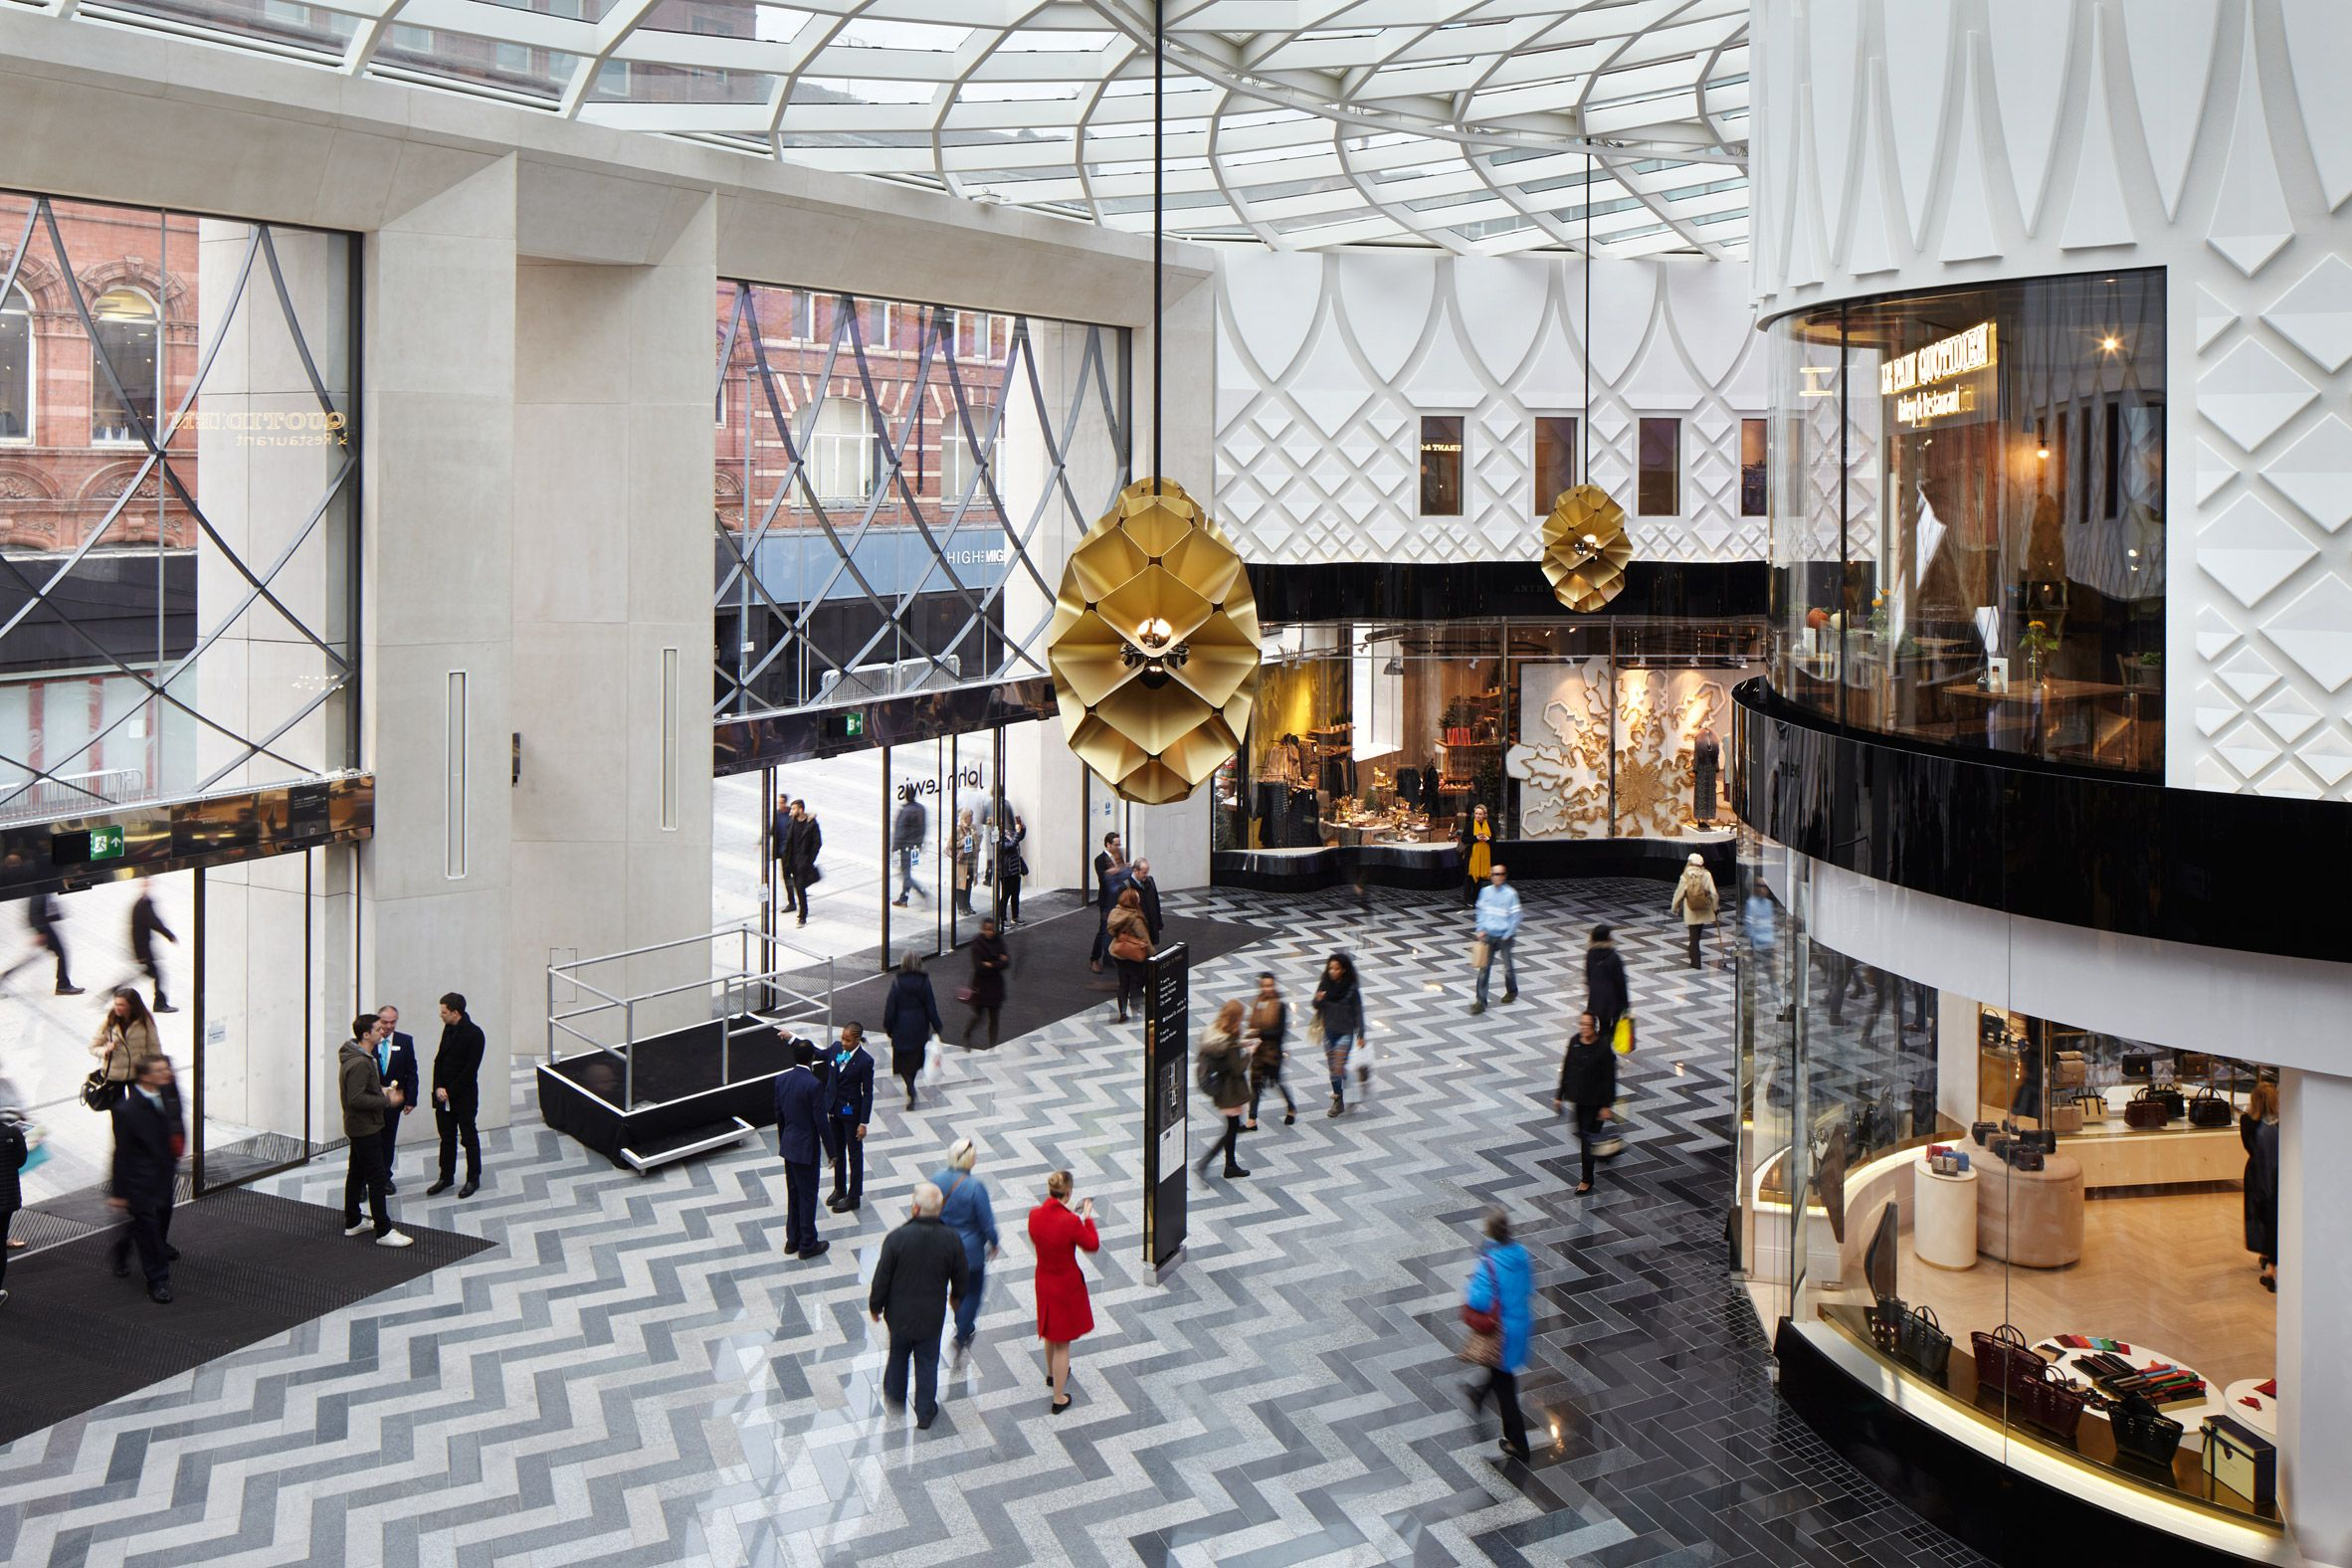 London firm Acme has completed a shopping centre in Leeds